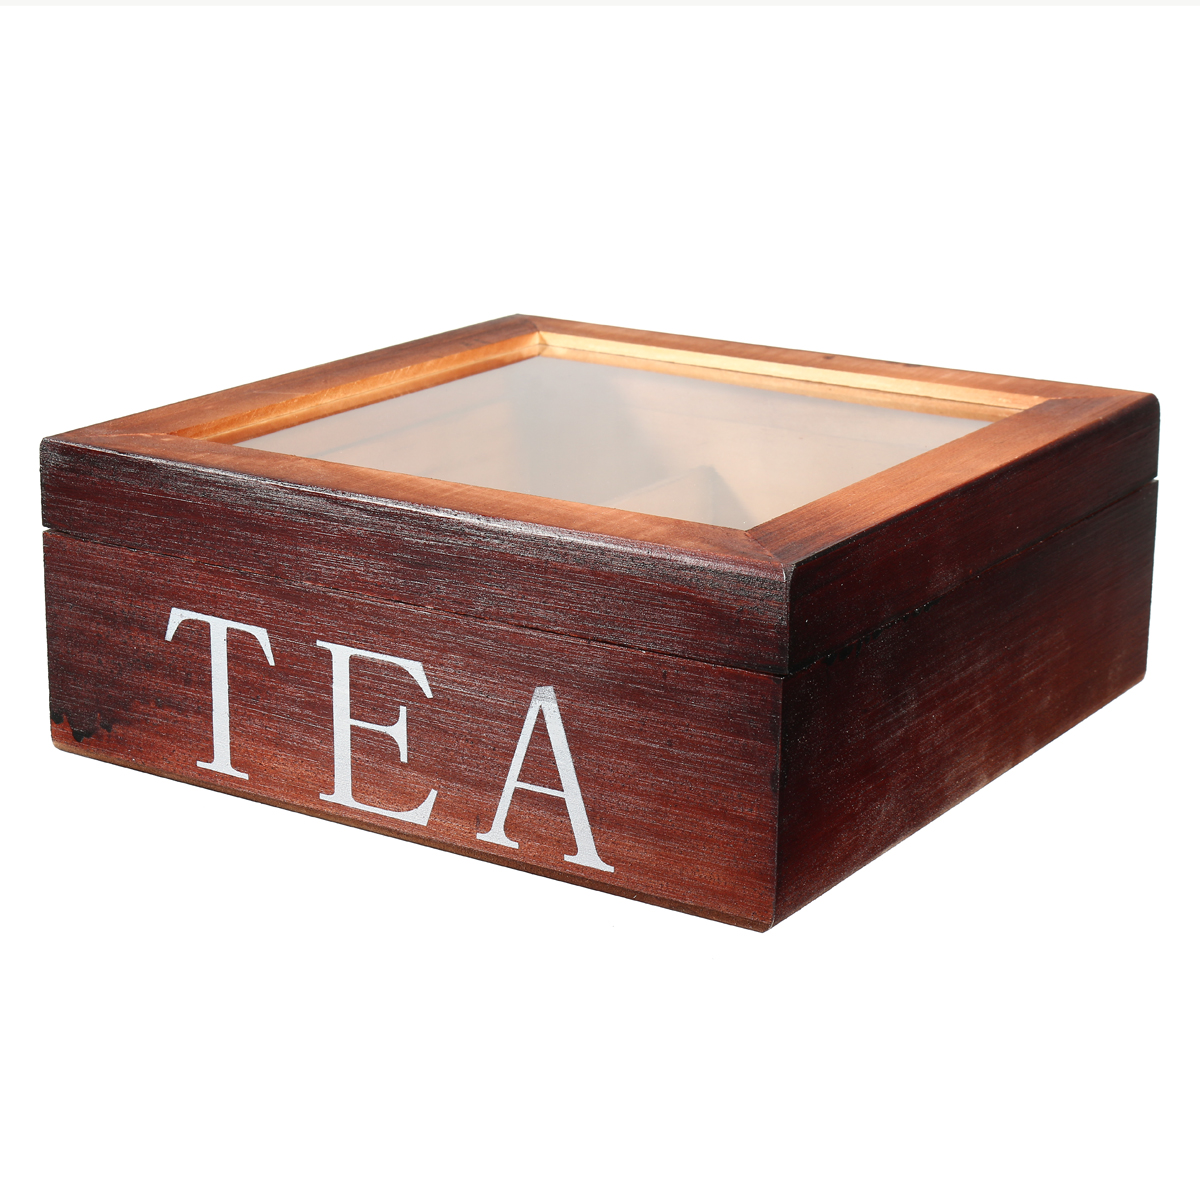 Tea Bag Stores Wooden Tea Box 9 Compartments Hinged Glass Lid Tea Organizer